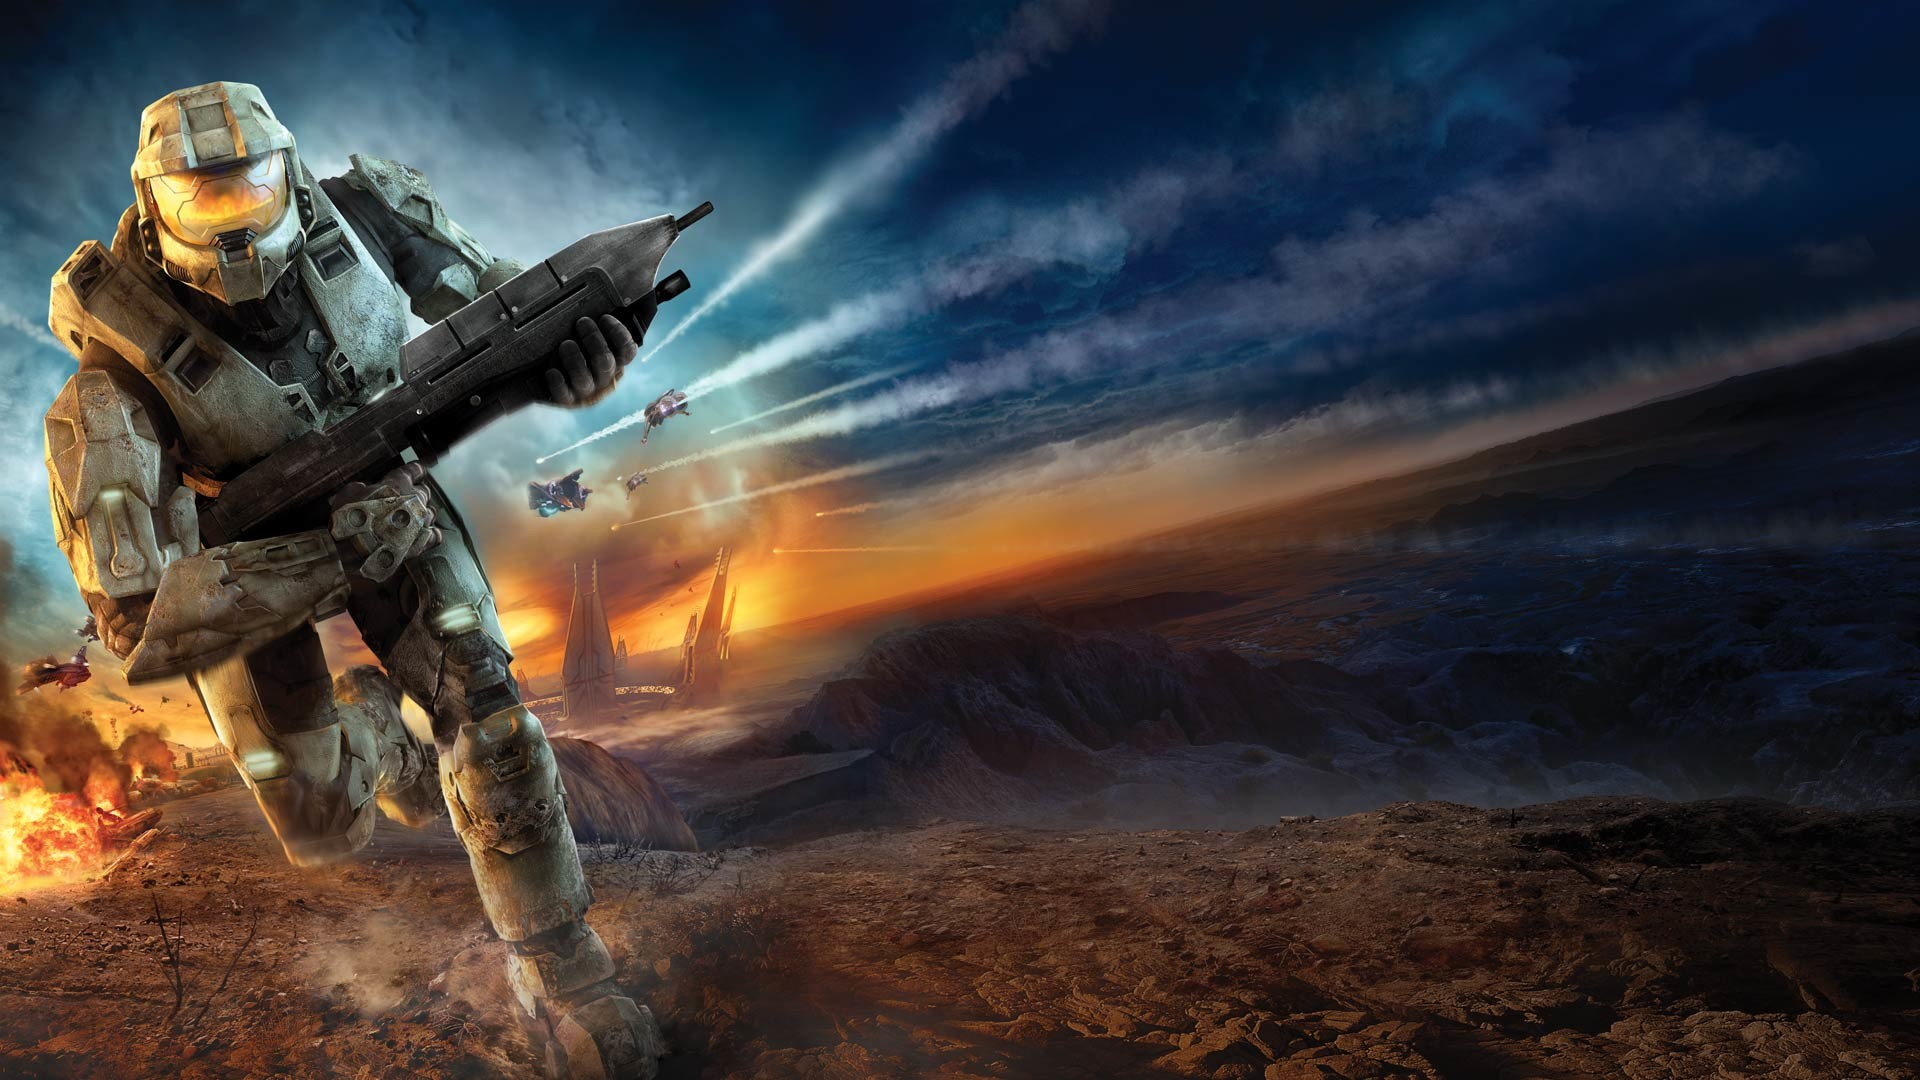 1920x1080 High Resolution Halo 3 Odst Wallpaper HD 12 Game Full Size ... | Download  Wallpaper | Pinterest | Wallpaper